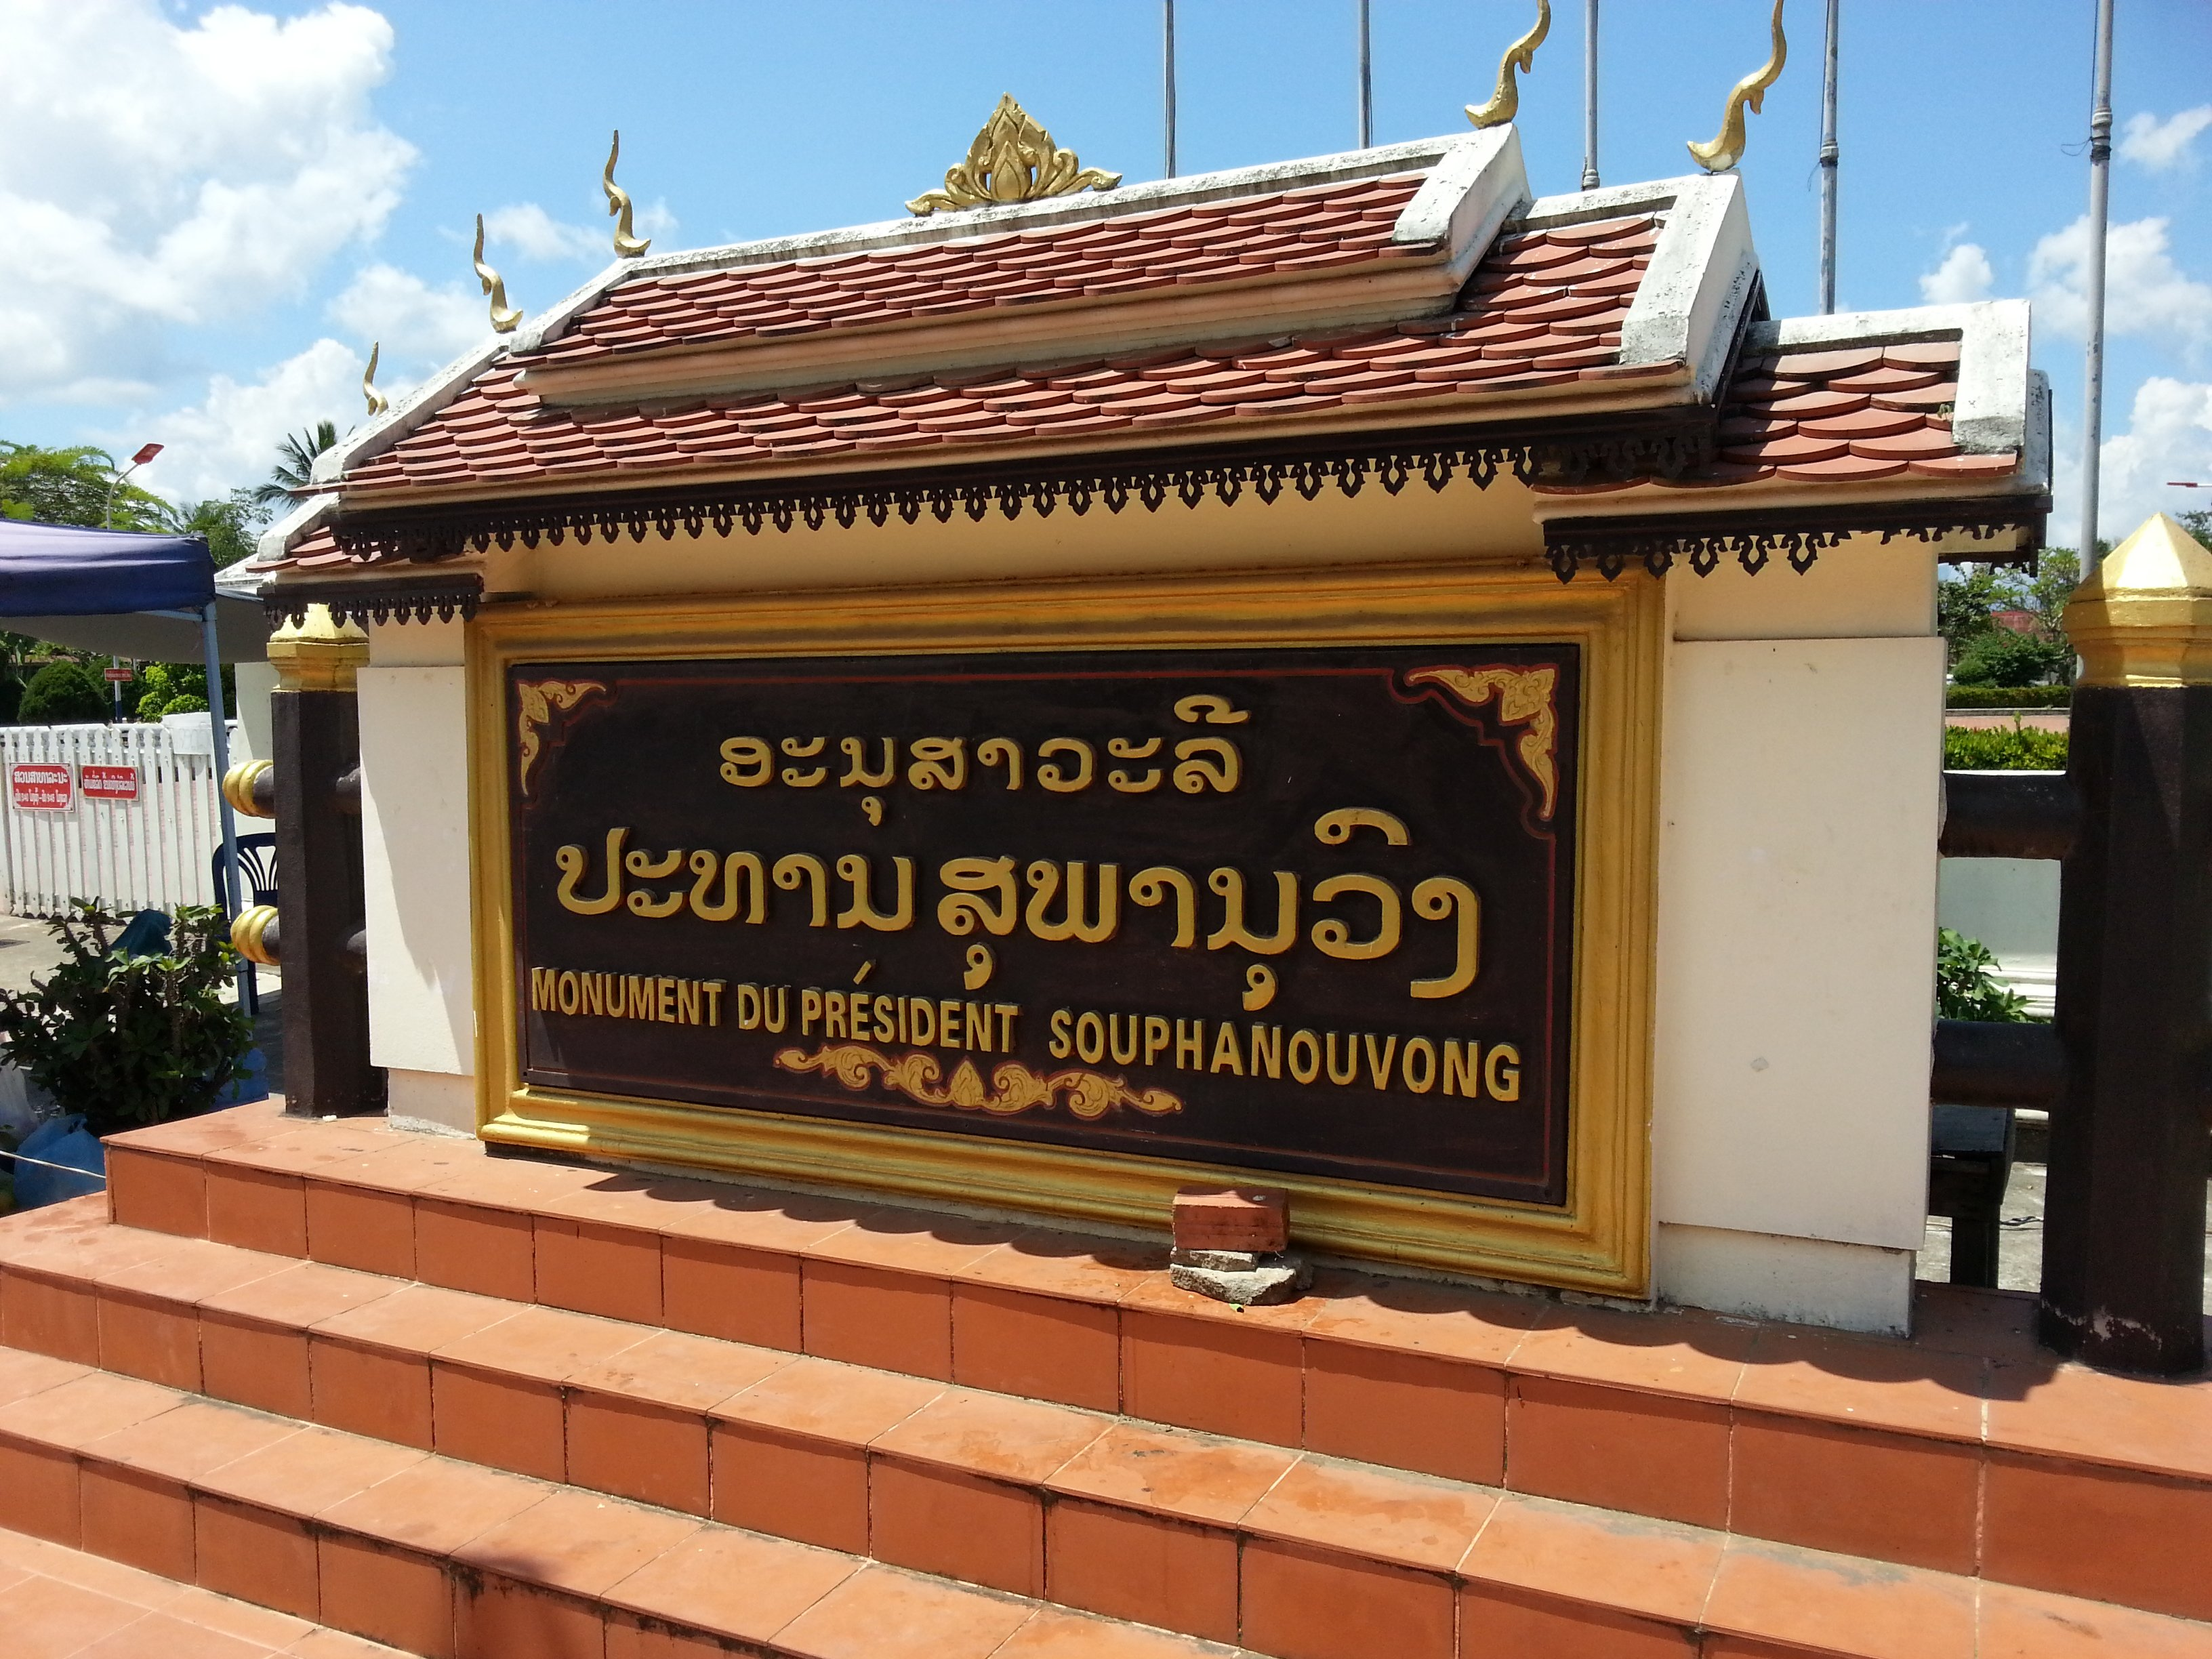 Entrance to the Monument to President Souphanouvong